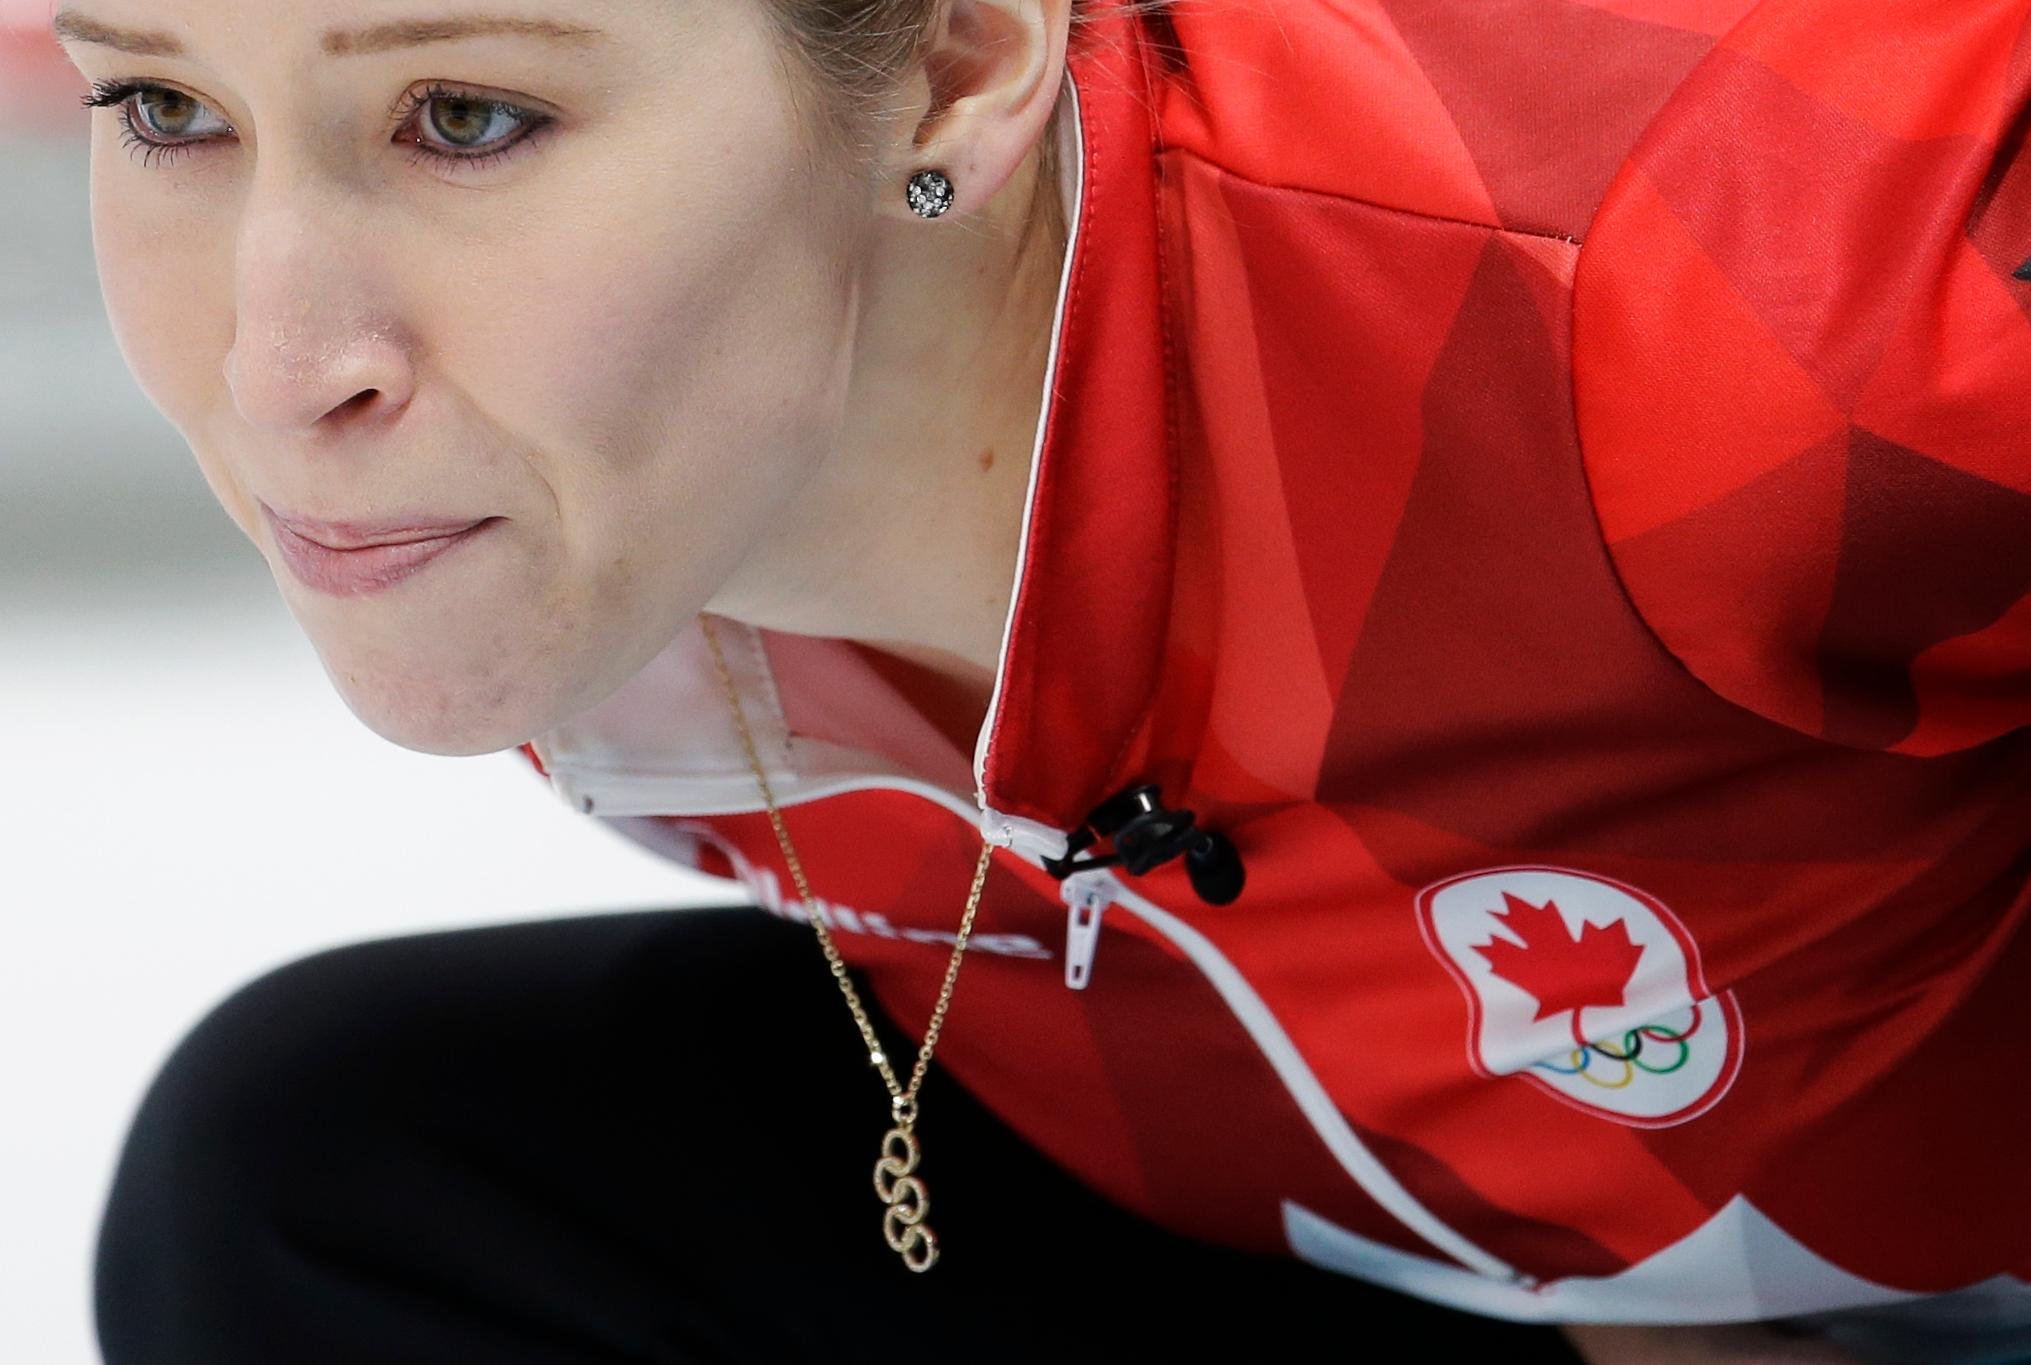 Canada's Kaitlyn Lawes looks on during the mixed doubles semi-final curling match against Norway's Kristin Skaslien and Magnus Nedregotten at the 2018 Winter Olympics in Gangneung, South Korea, Monday, Feb. 12, 2018. (AP Photo/Natacha Pisarenko)